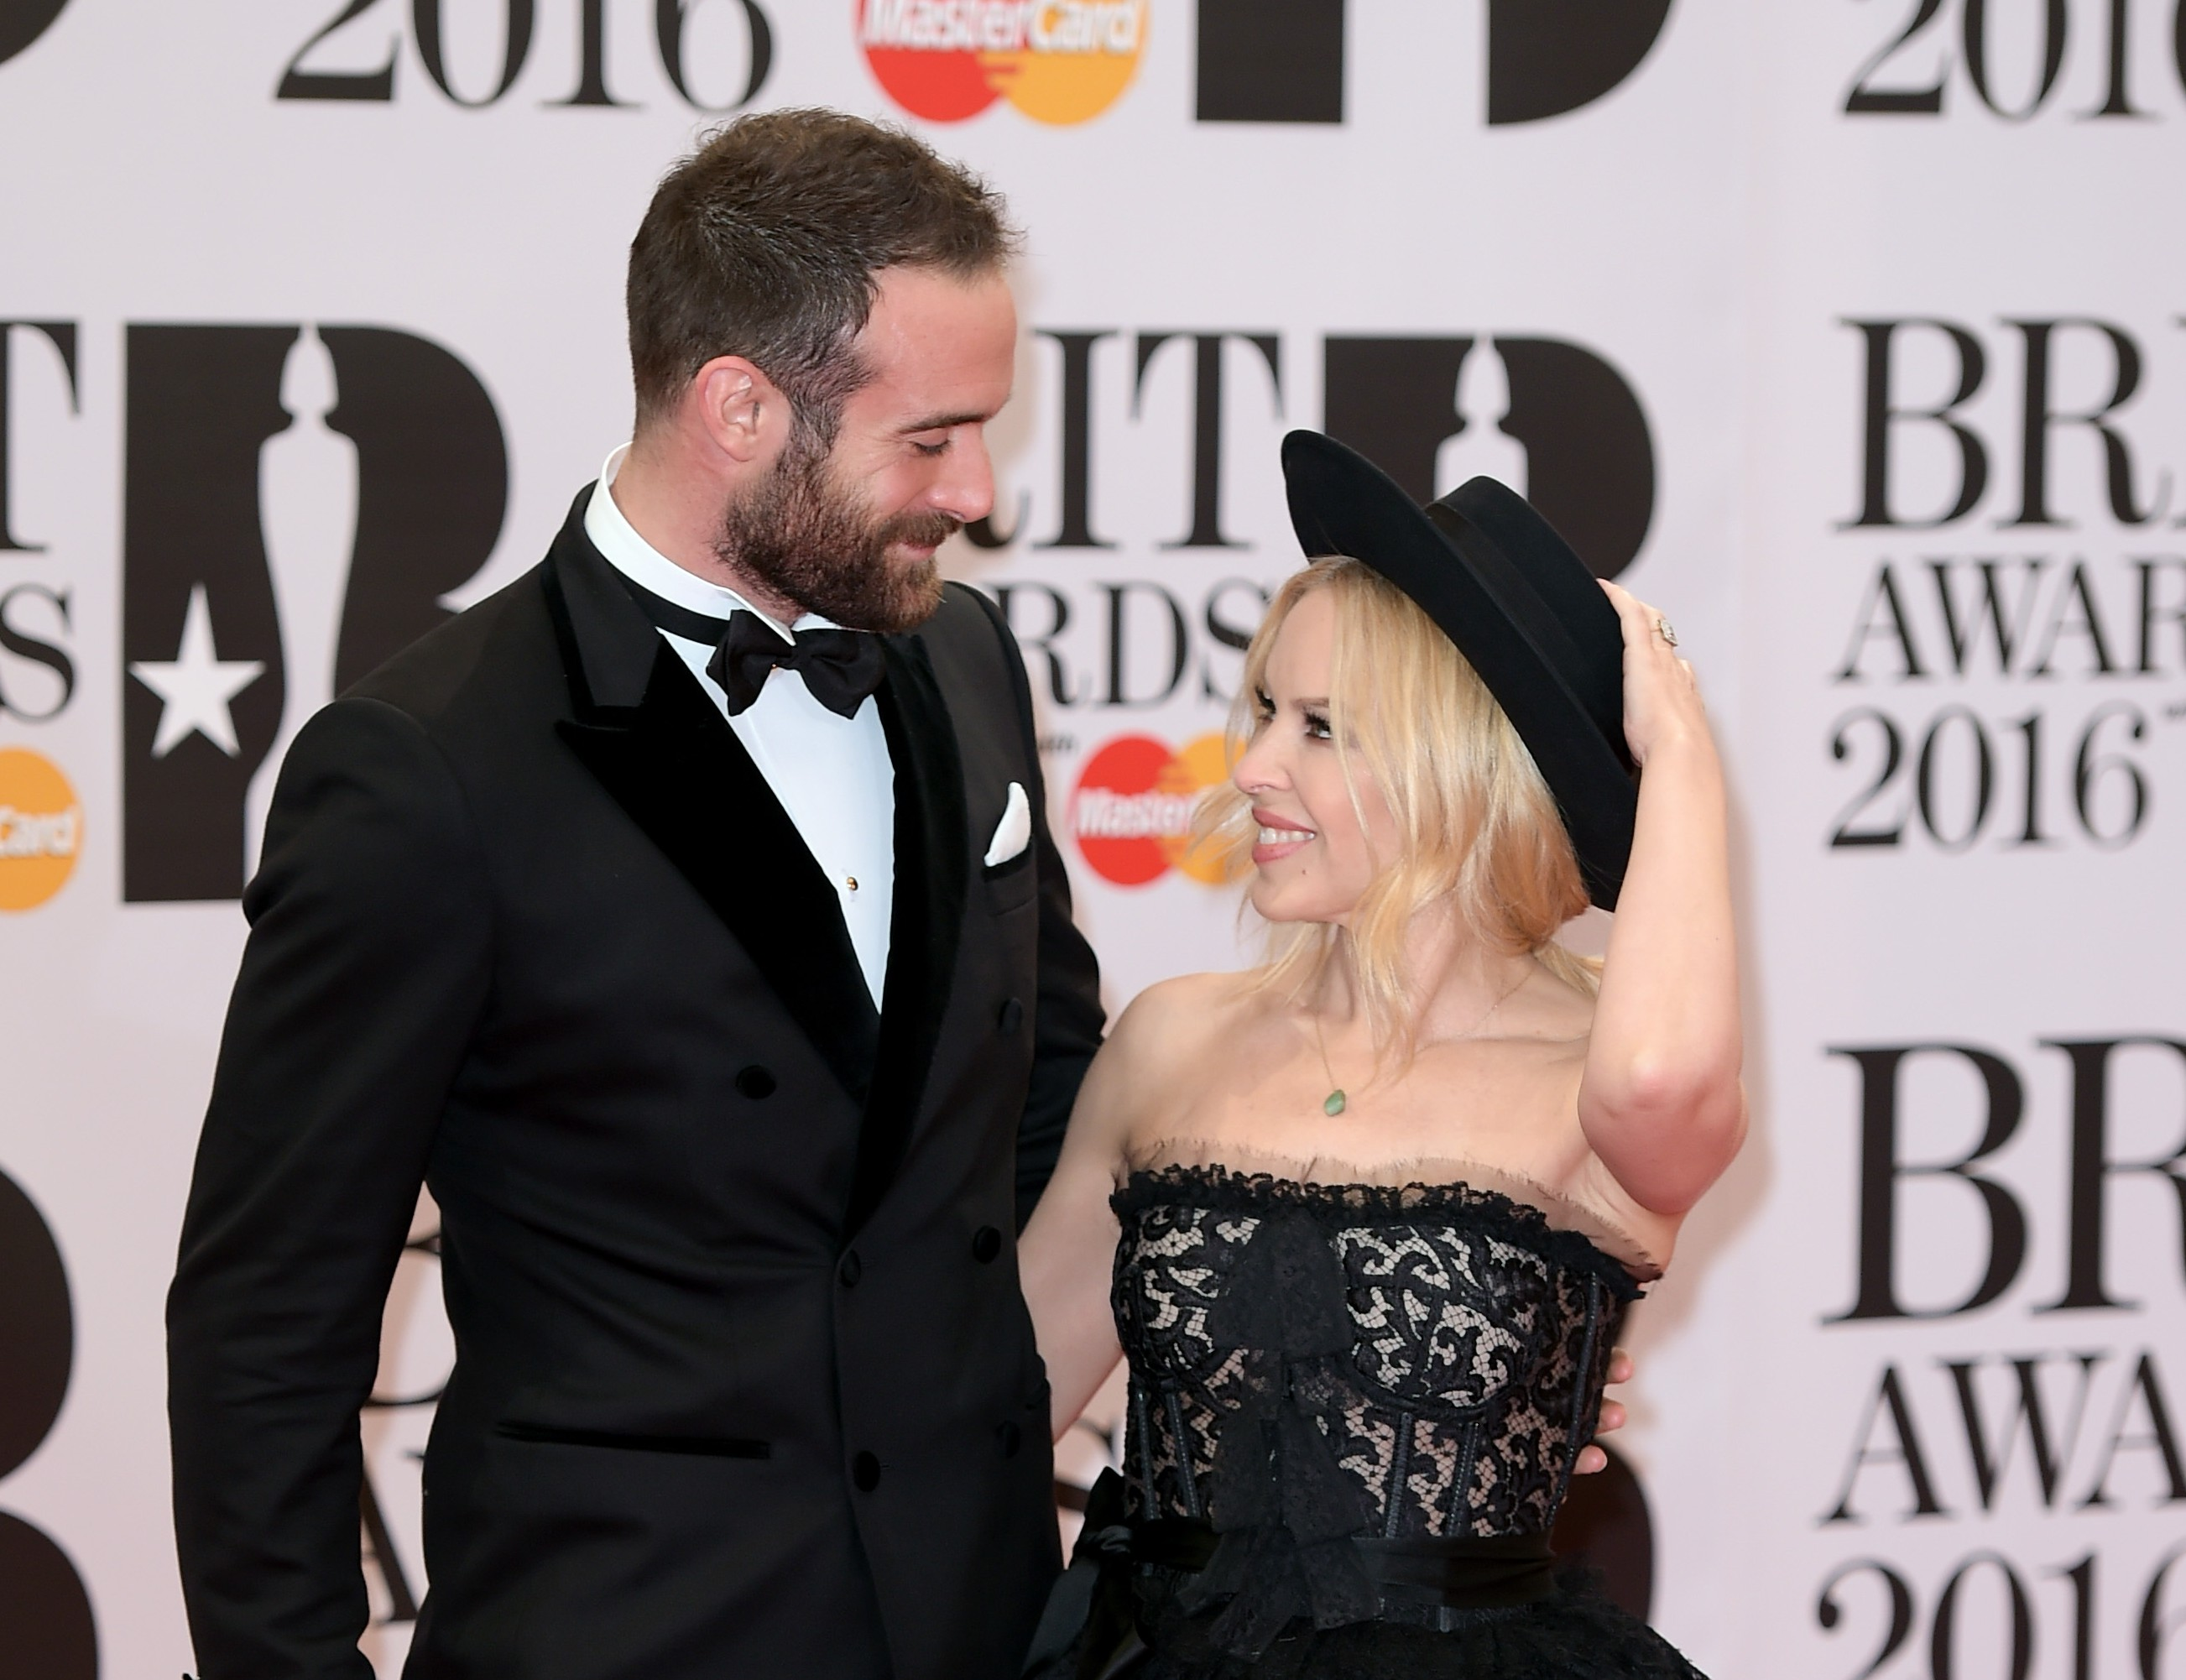 Kylie Minogue says she won't marry until Australia legalises same-sex marriage